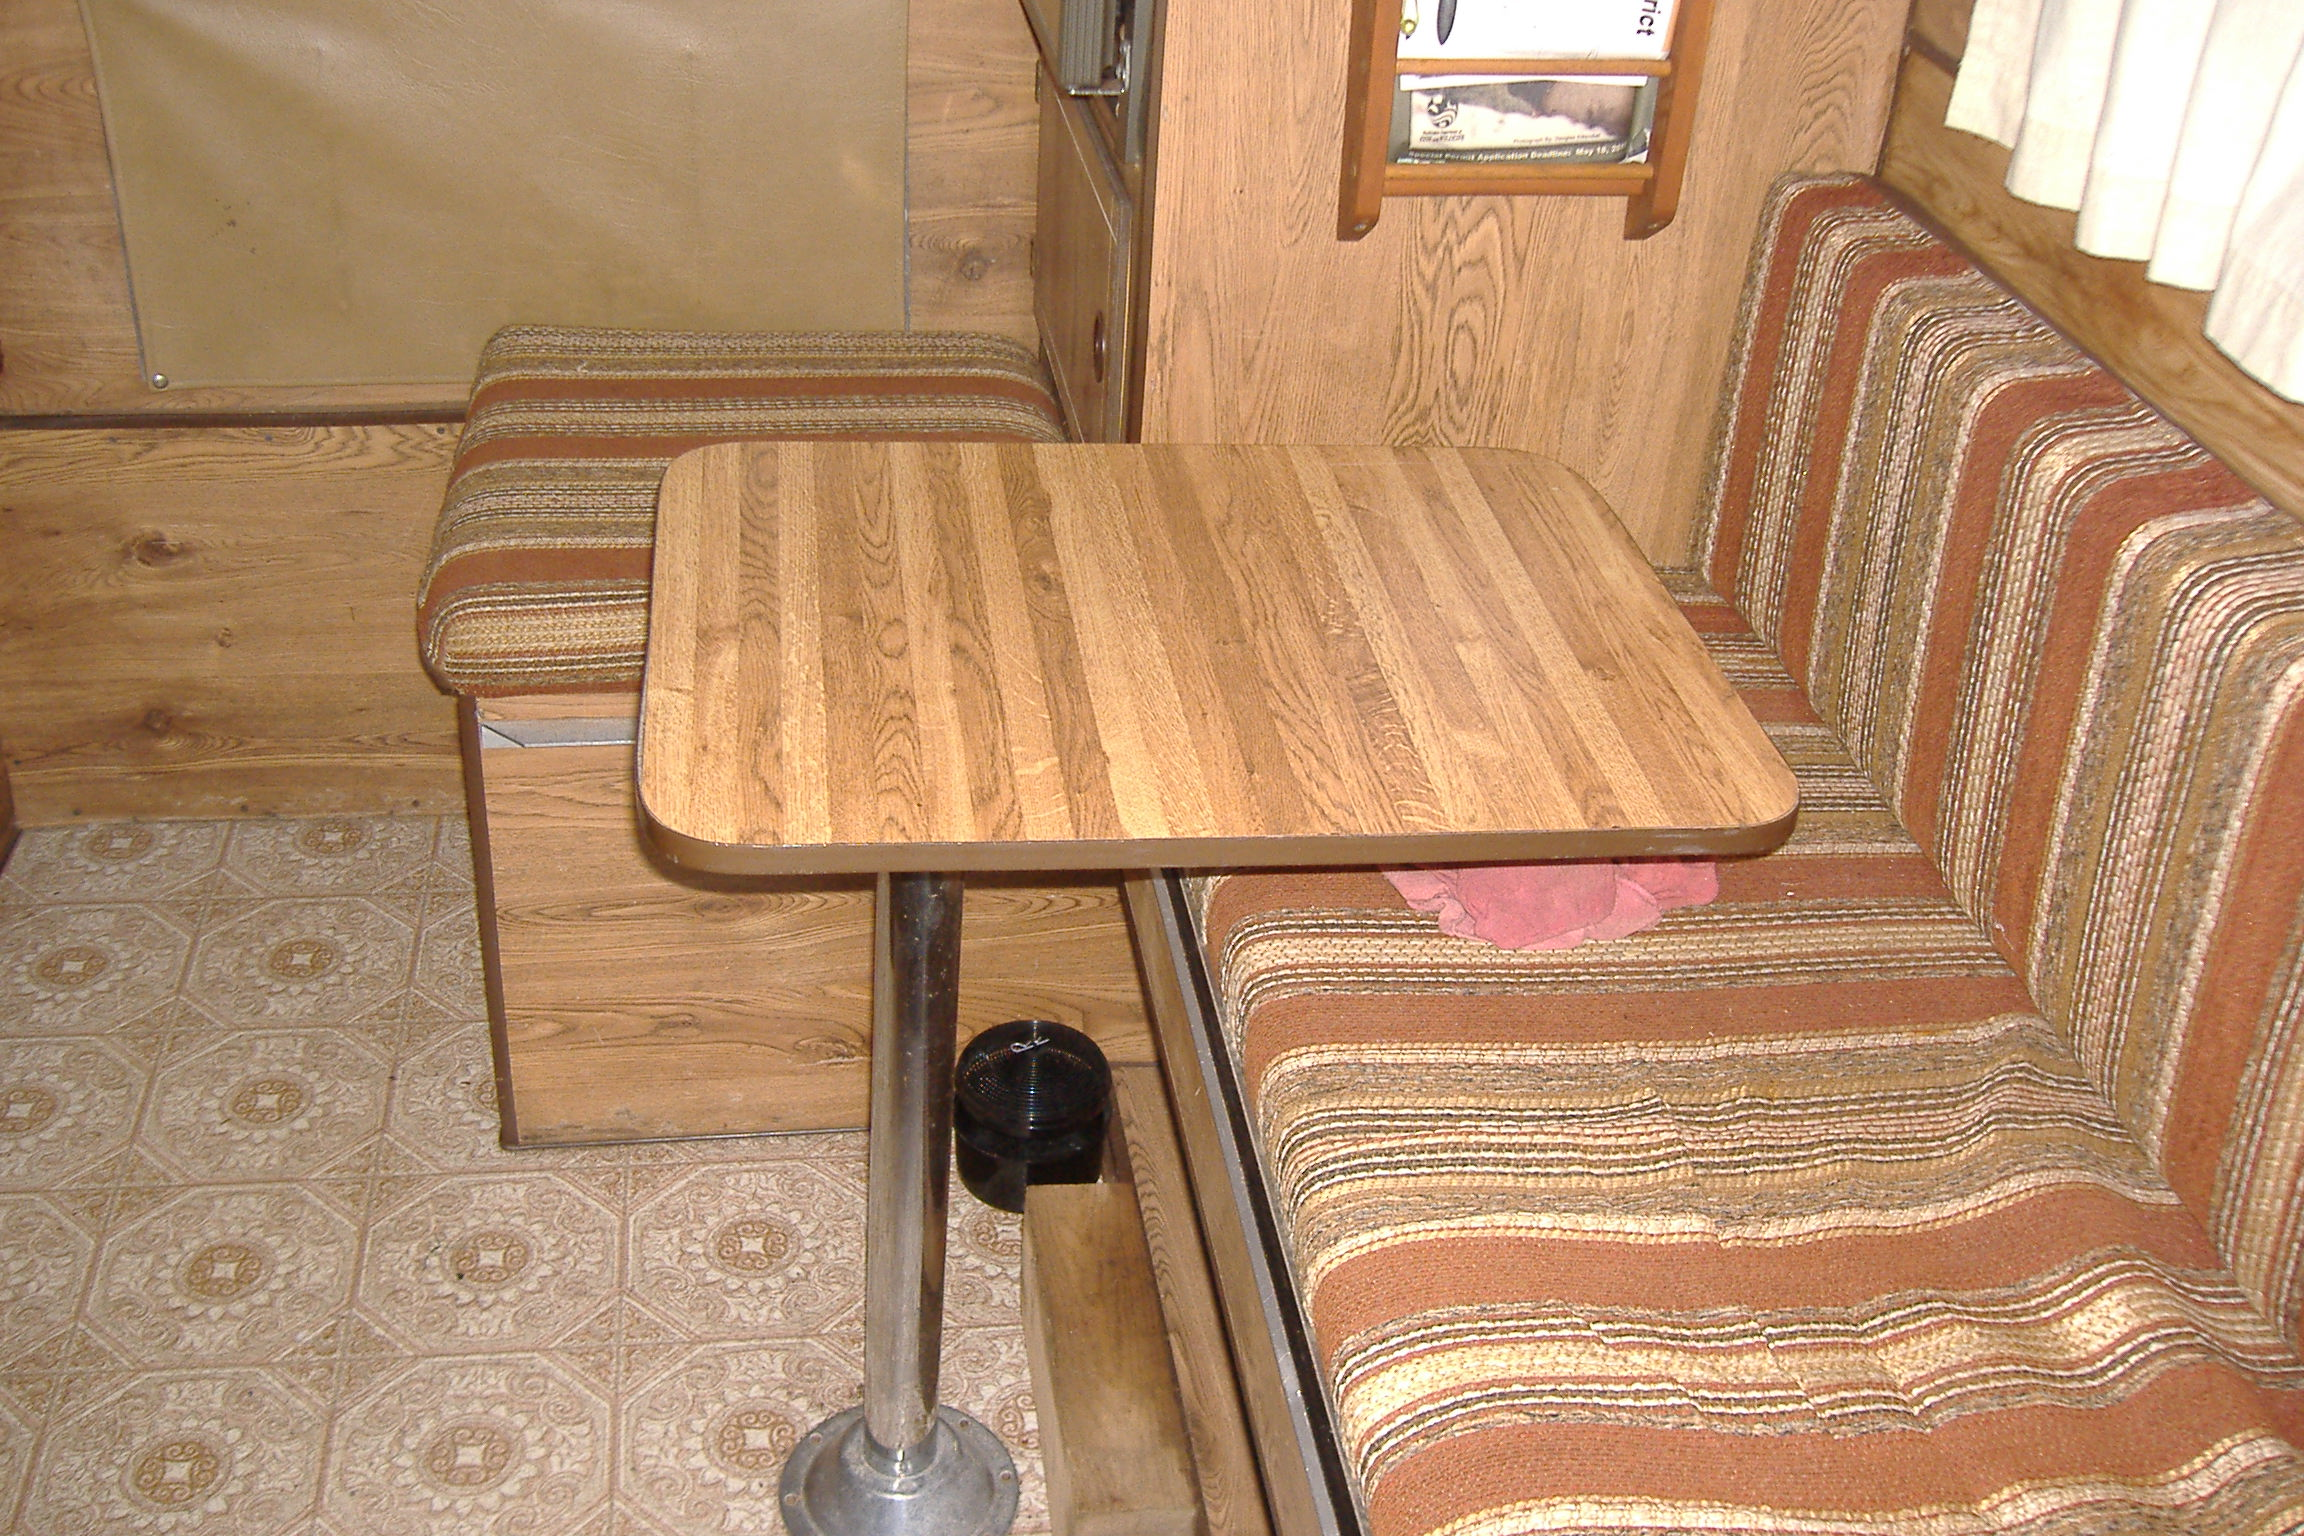 Cool DIY Outdoor Table Fits Between Wheel Well And Tire On Casita Trailer